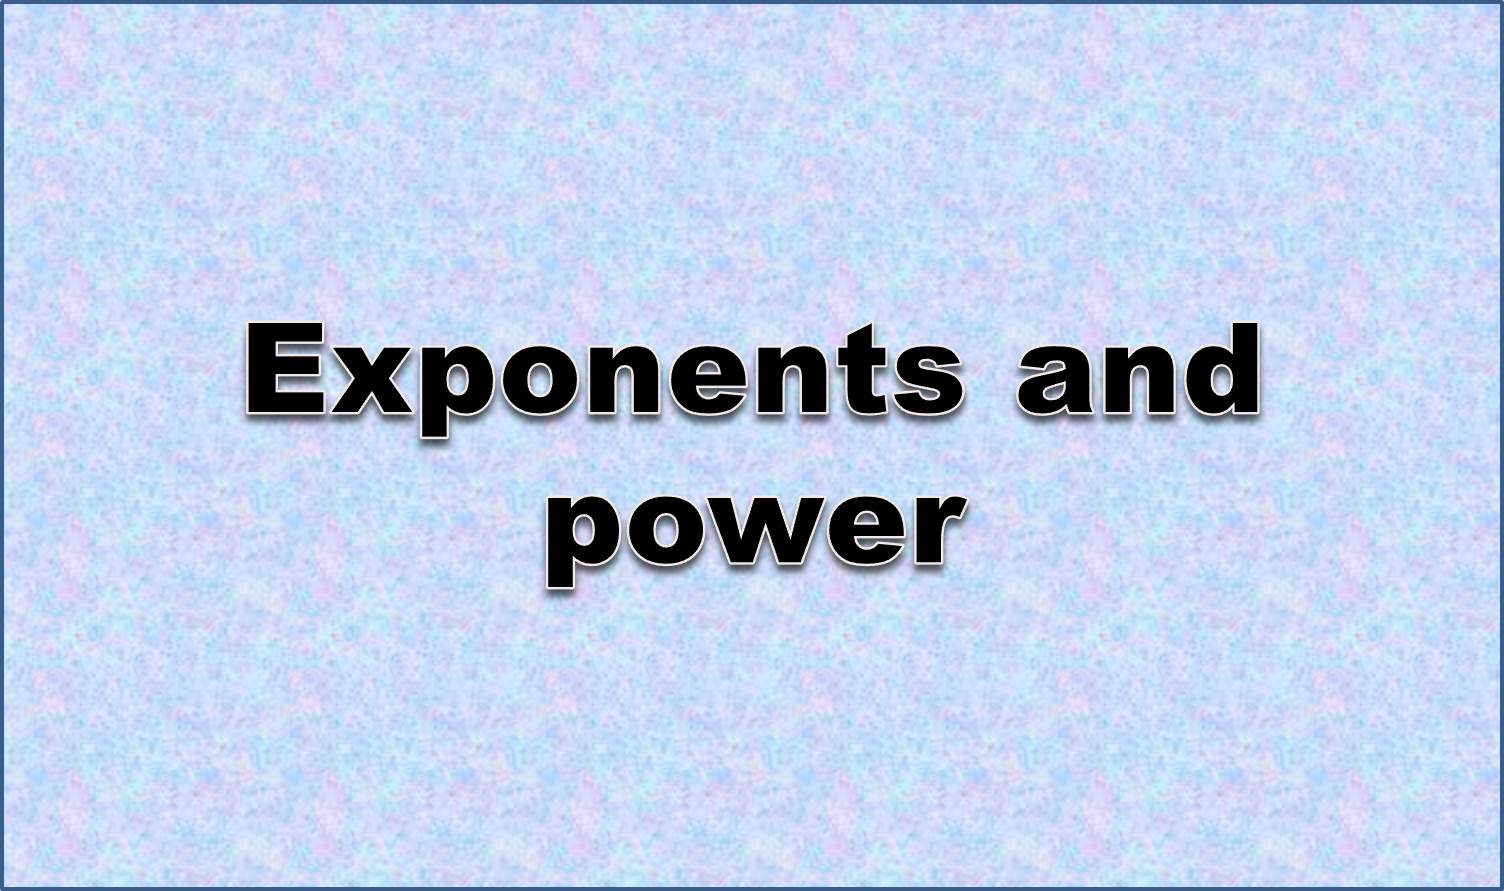 http://study.aisectonline.com/images/Negative exponents.jpg